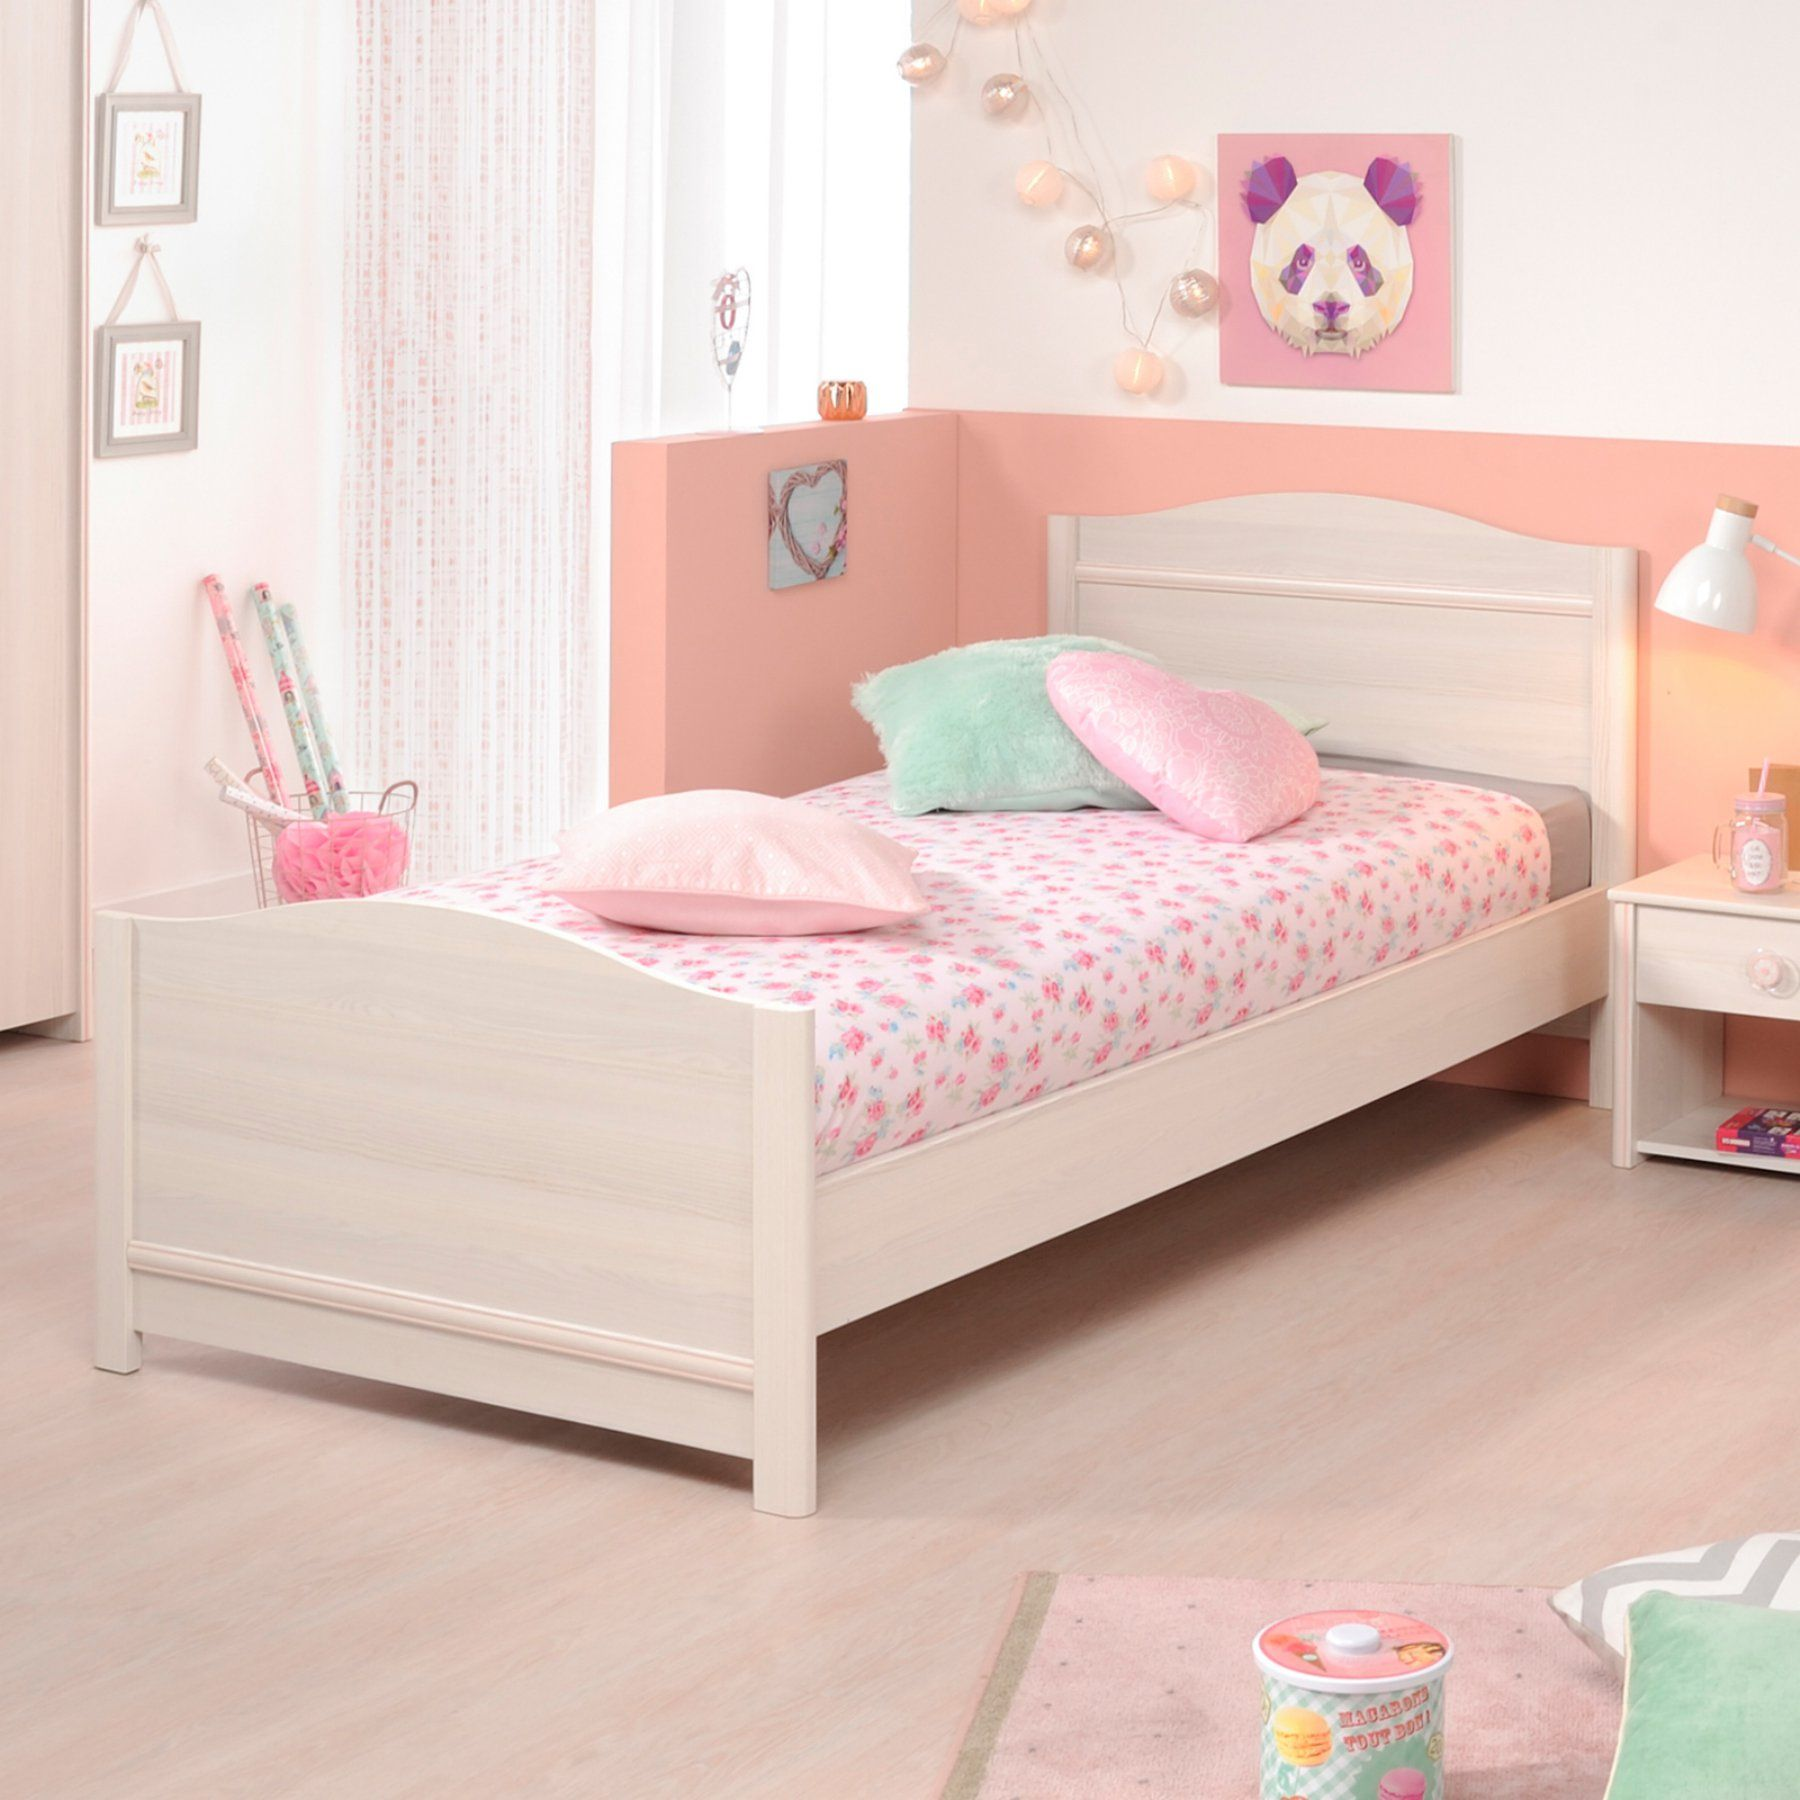 Parisot Nina Youth Twin Bed With Optional Drawers  Azin814